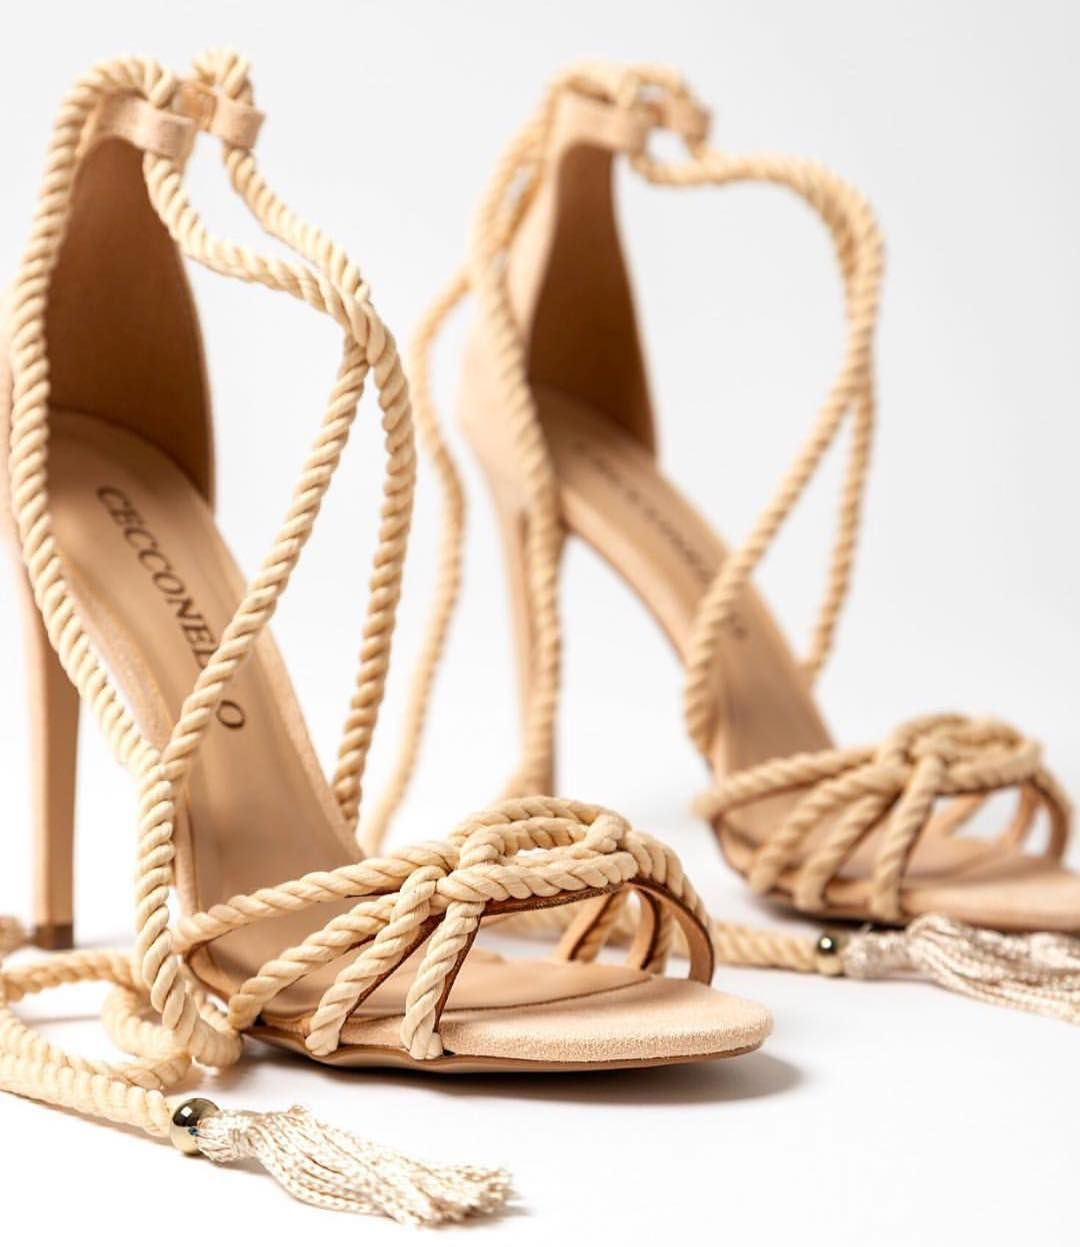 a2eaacf8b9c0d6 CECCONELLO Arabian Chic nude rope sandals